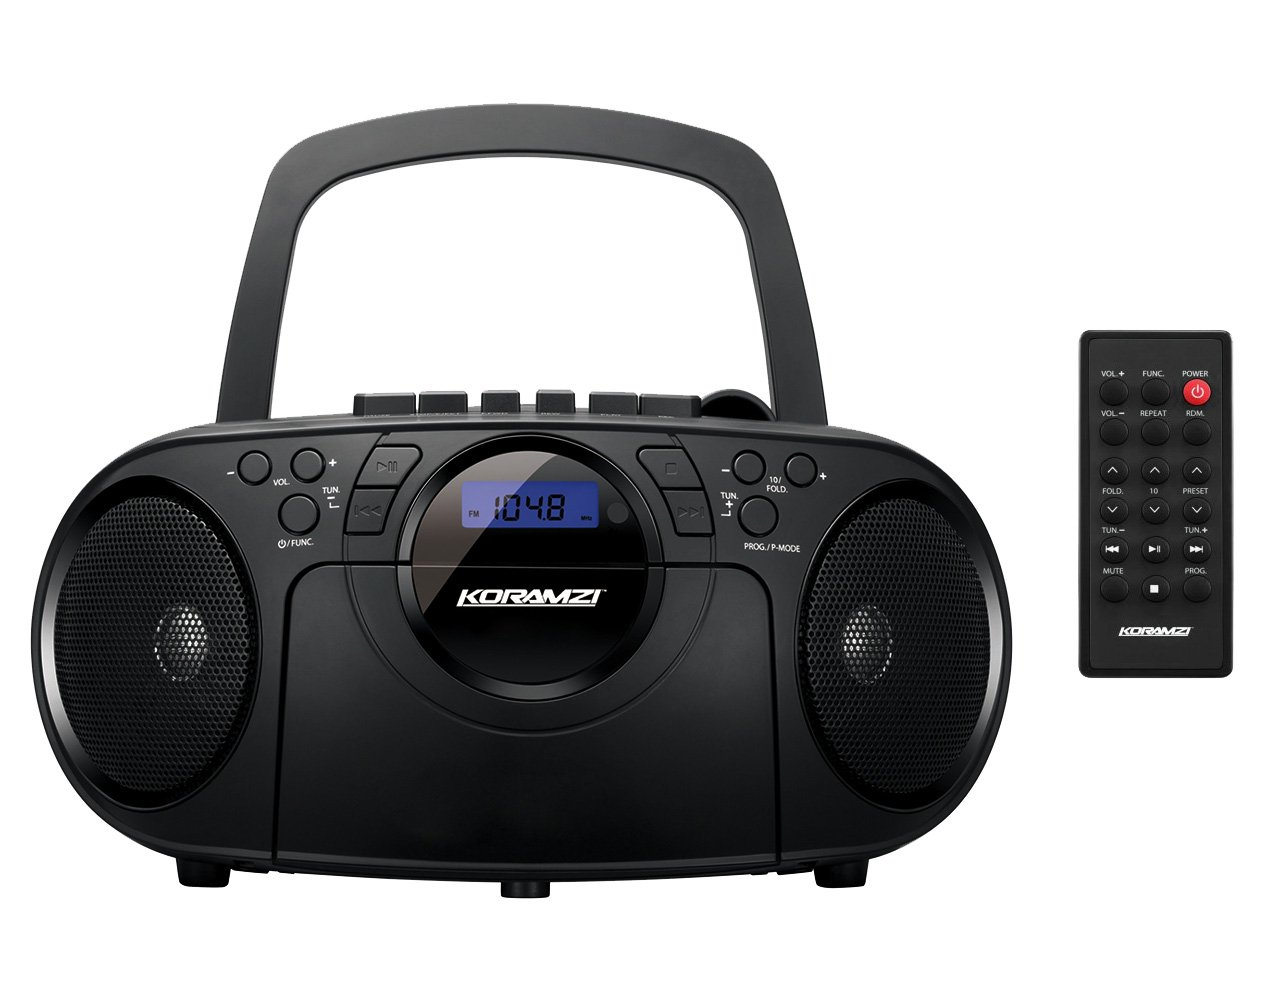 Koramzi Portable CD Boombox Full Range Stereo Sound System w/ Top-Loading MP3 CD Player, Cassette Player and Recorder, AM/FM Radio, USB Input, Headphone & AUX Jack w/ Remote Control- CD705CBK(Black)